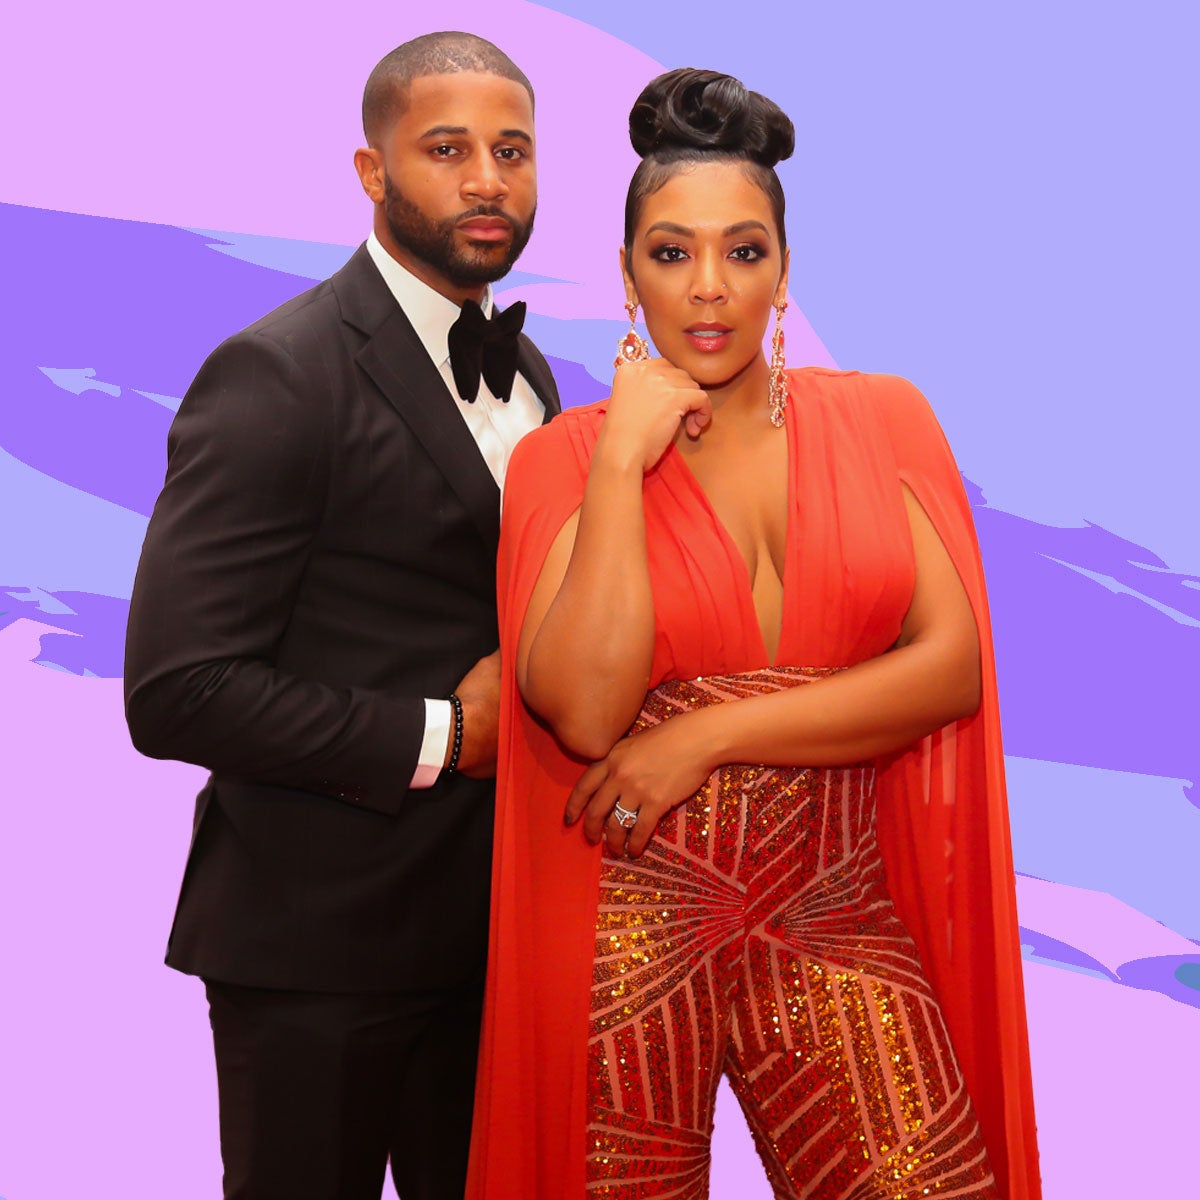 These Couples Came Out To Celebrate and Spread Love at ESSENCE's Black Love Gala In NYC